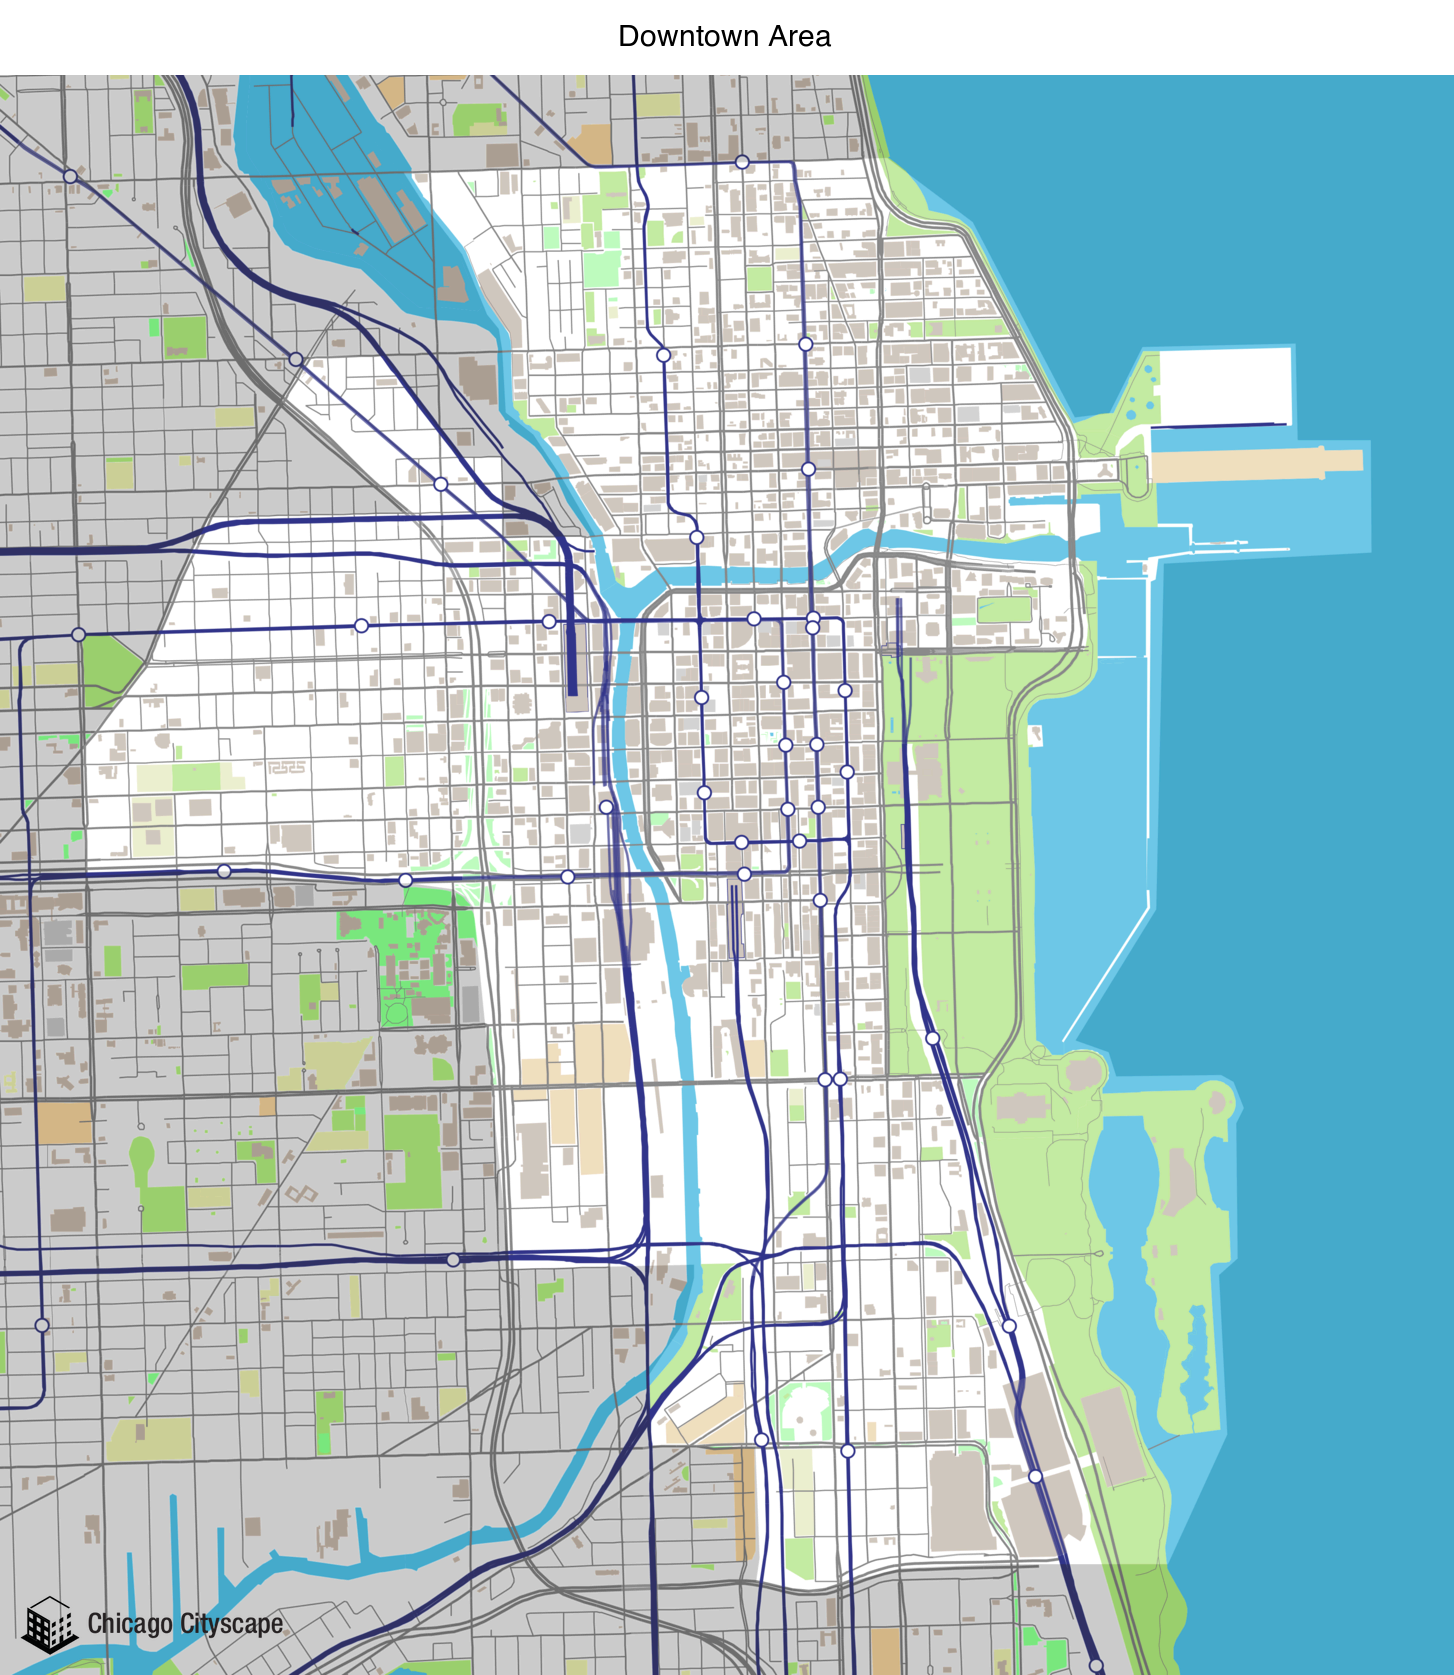 Chicago Cityscape - Map of building projects, properties, and ... on